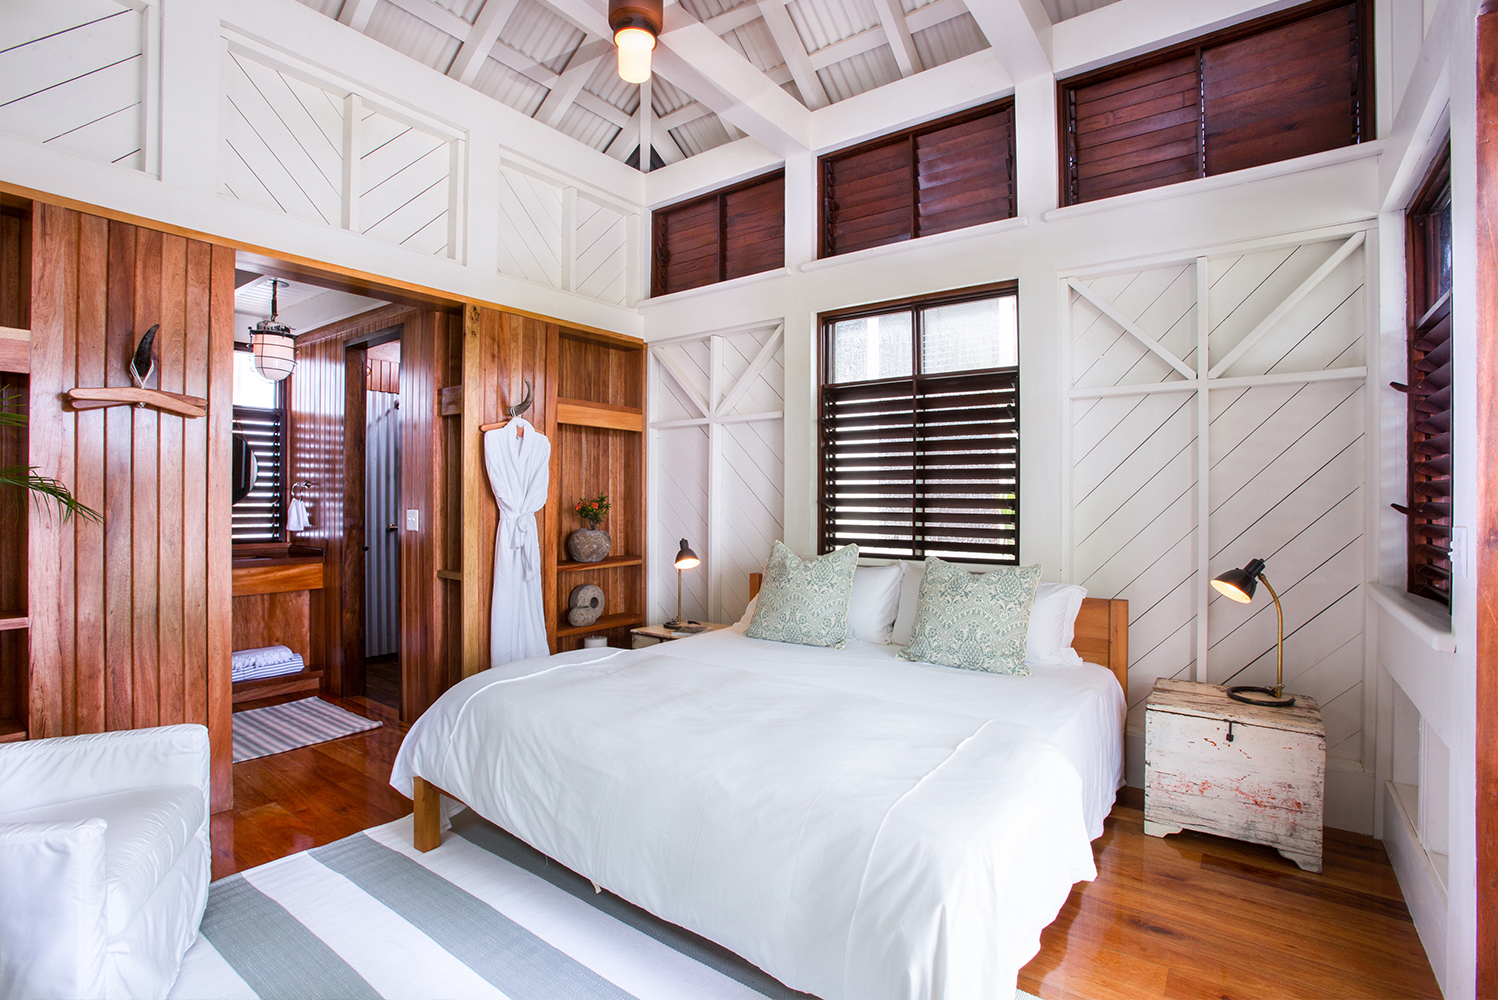 Mahogany Bay Resort & Beach Club has 205 cottages and villa-style rooms.